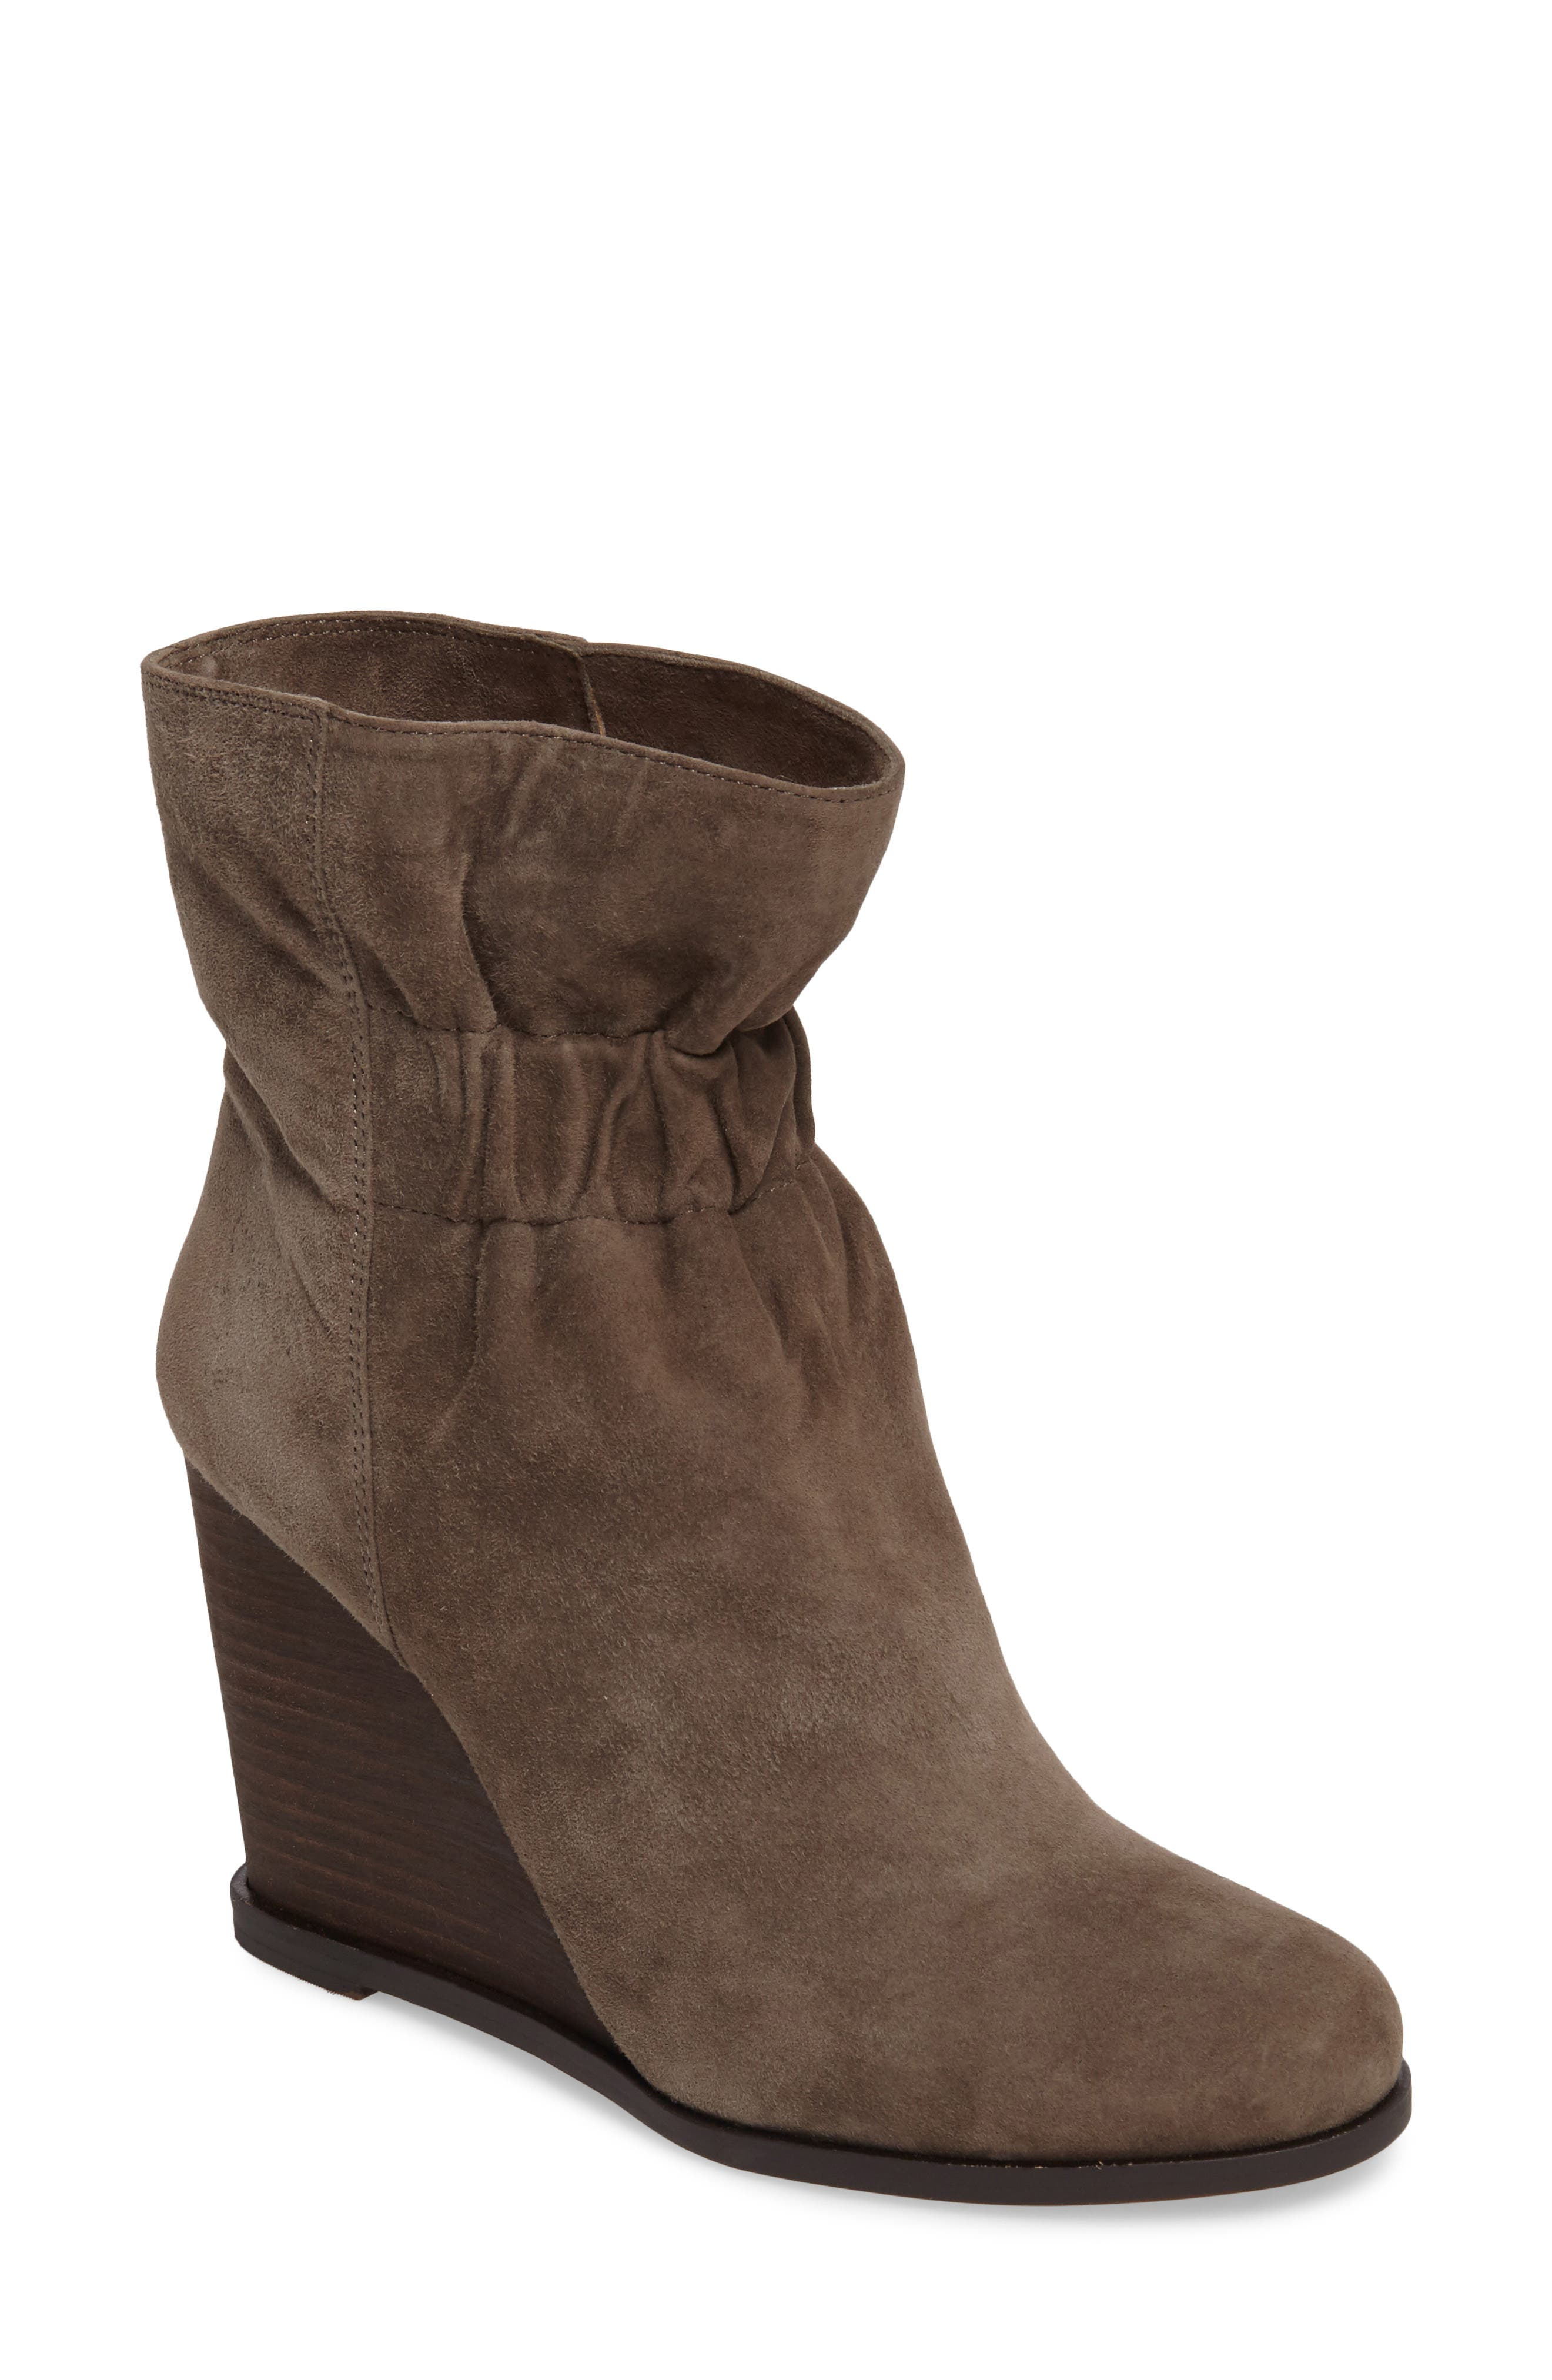 Splendid Rebecca Wedge Bootie (Women)